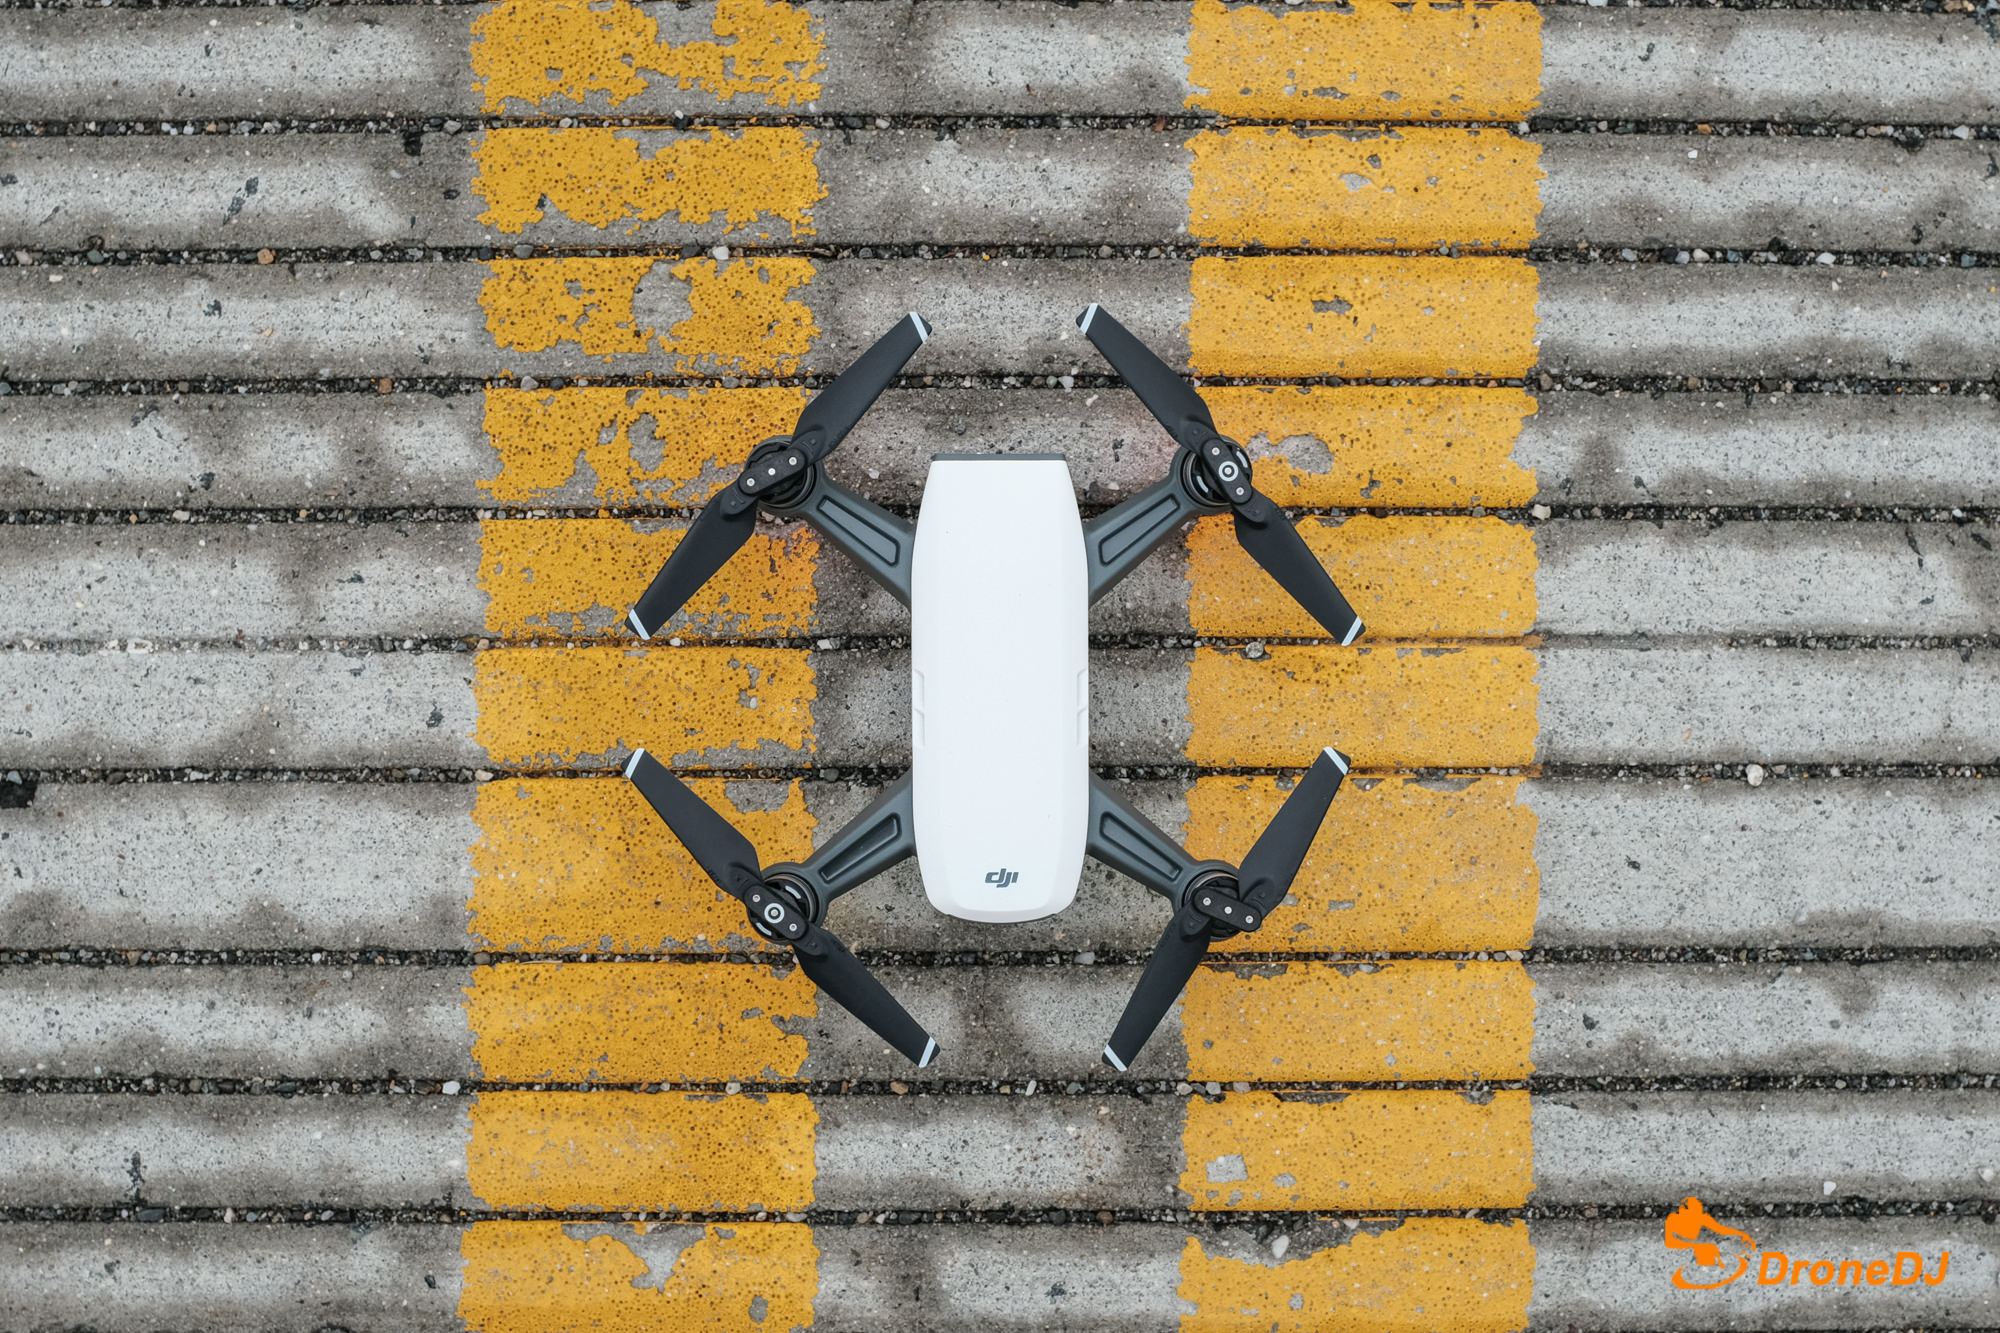 DJI just released a firmware update yesterday to enhance flight safety for your DJI Spark to prevent it from crashing as reported by some users.